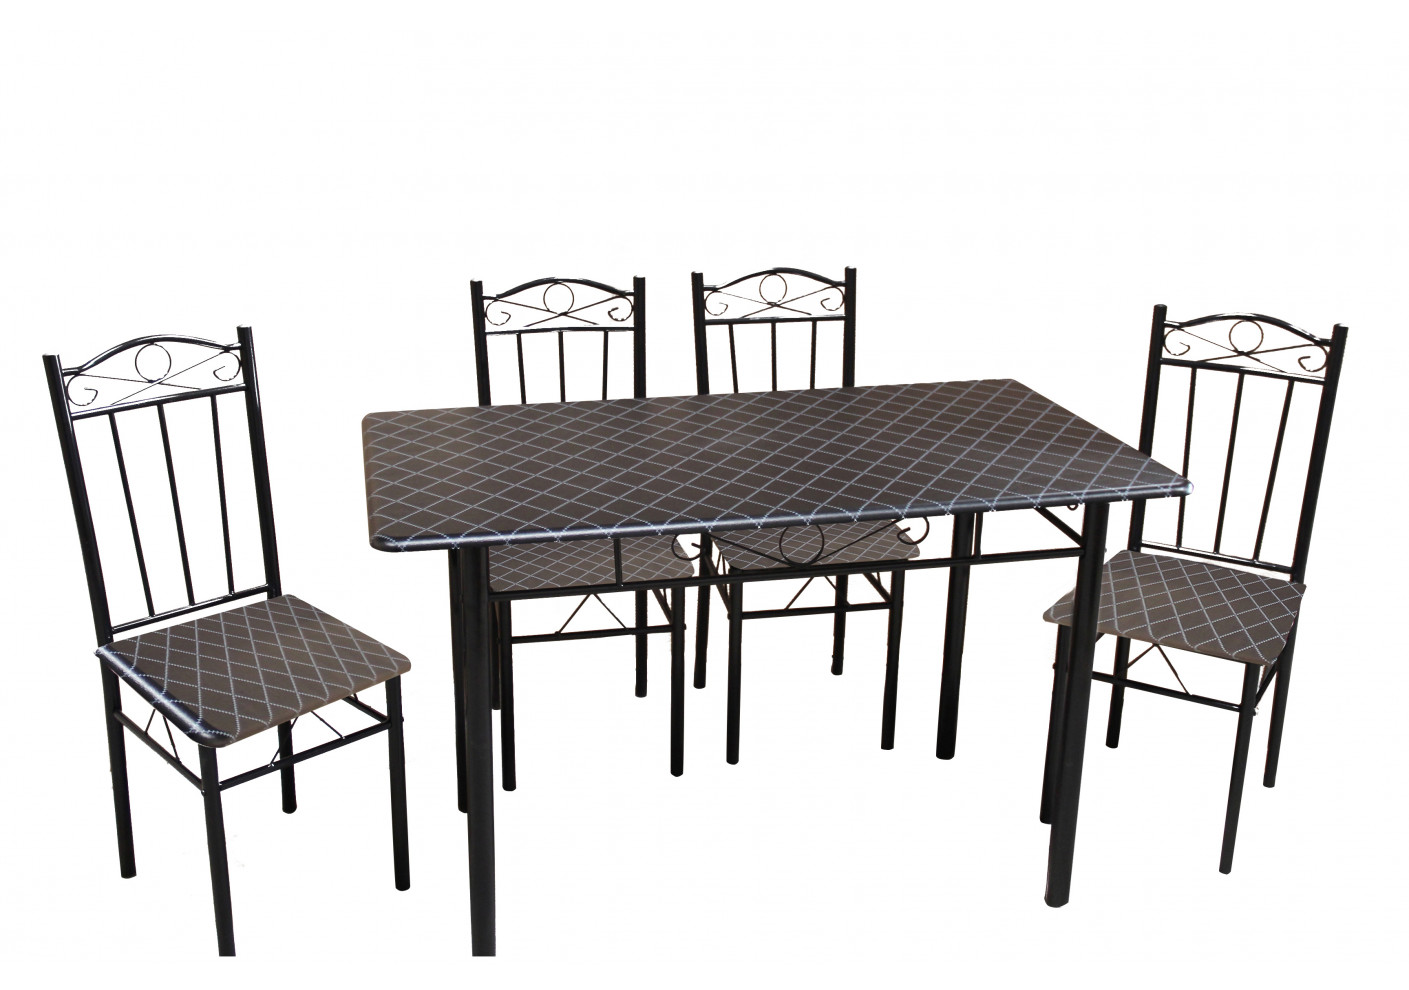 Ensemble Chaise Ensemble Table Chaise Cuisine Ensemble Table 4 Chaises